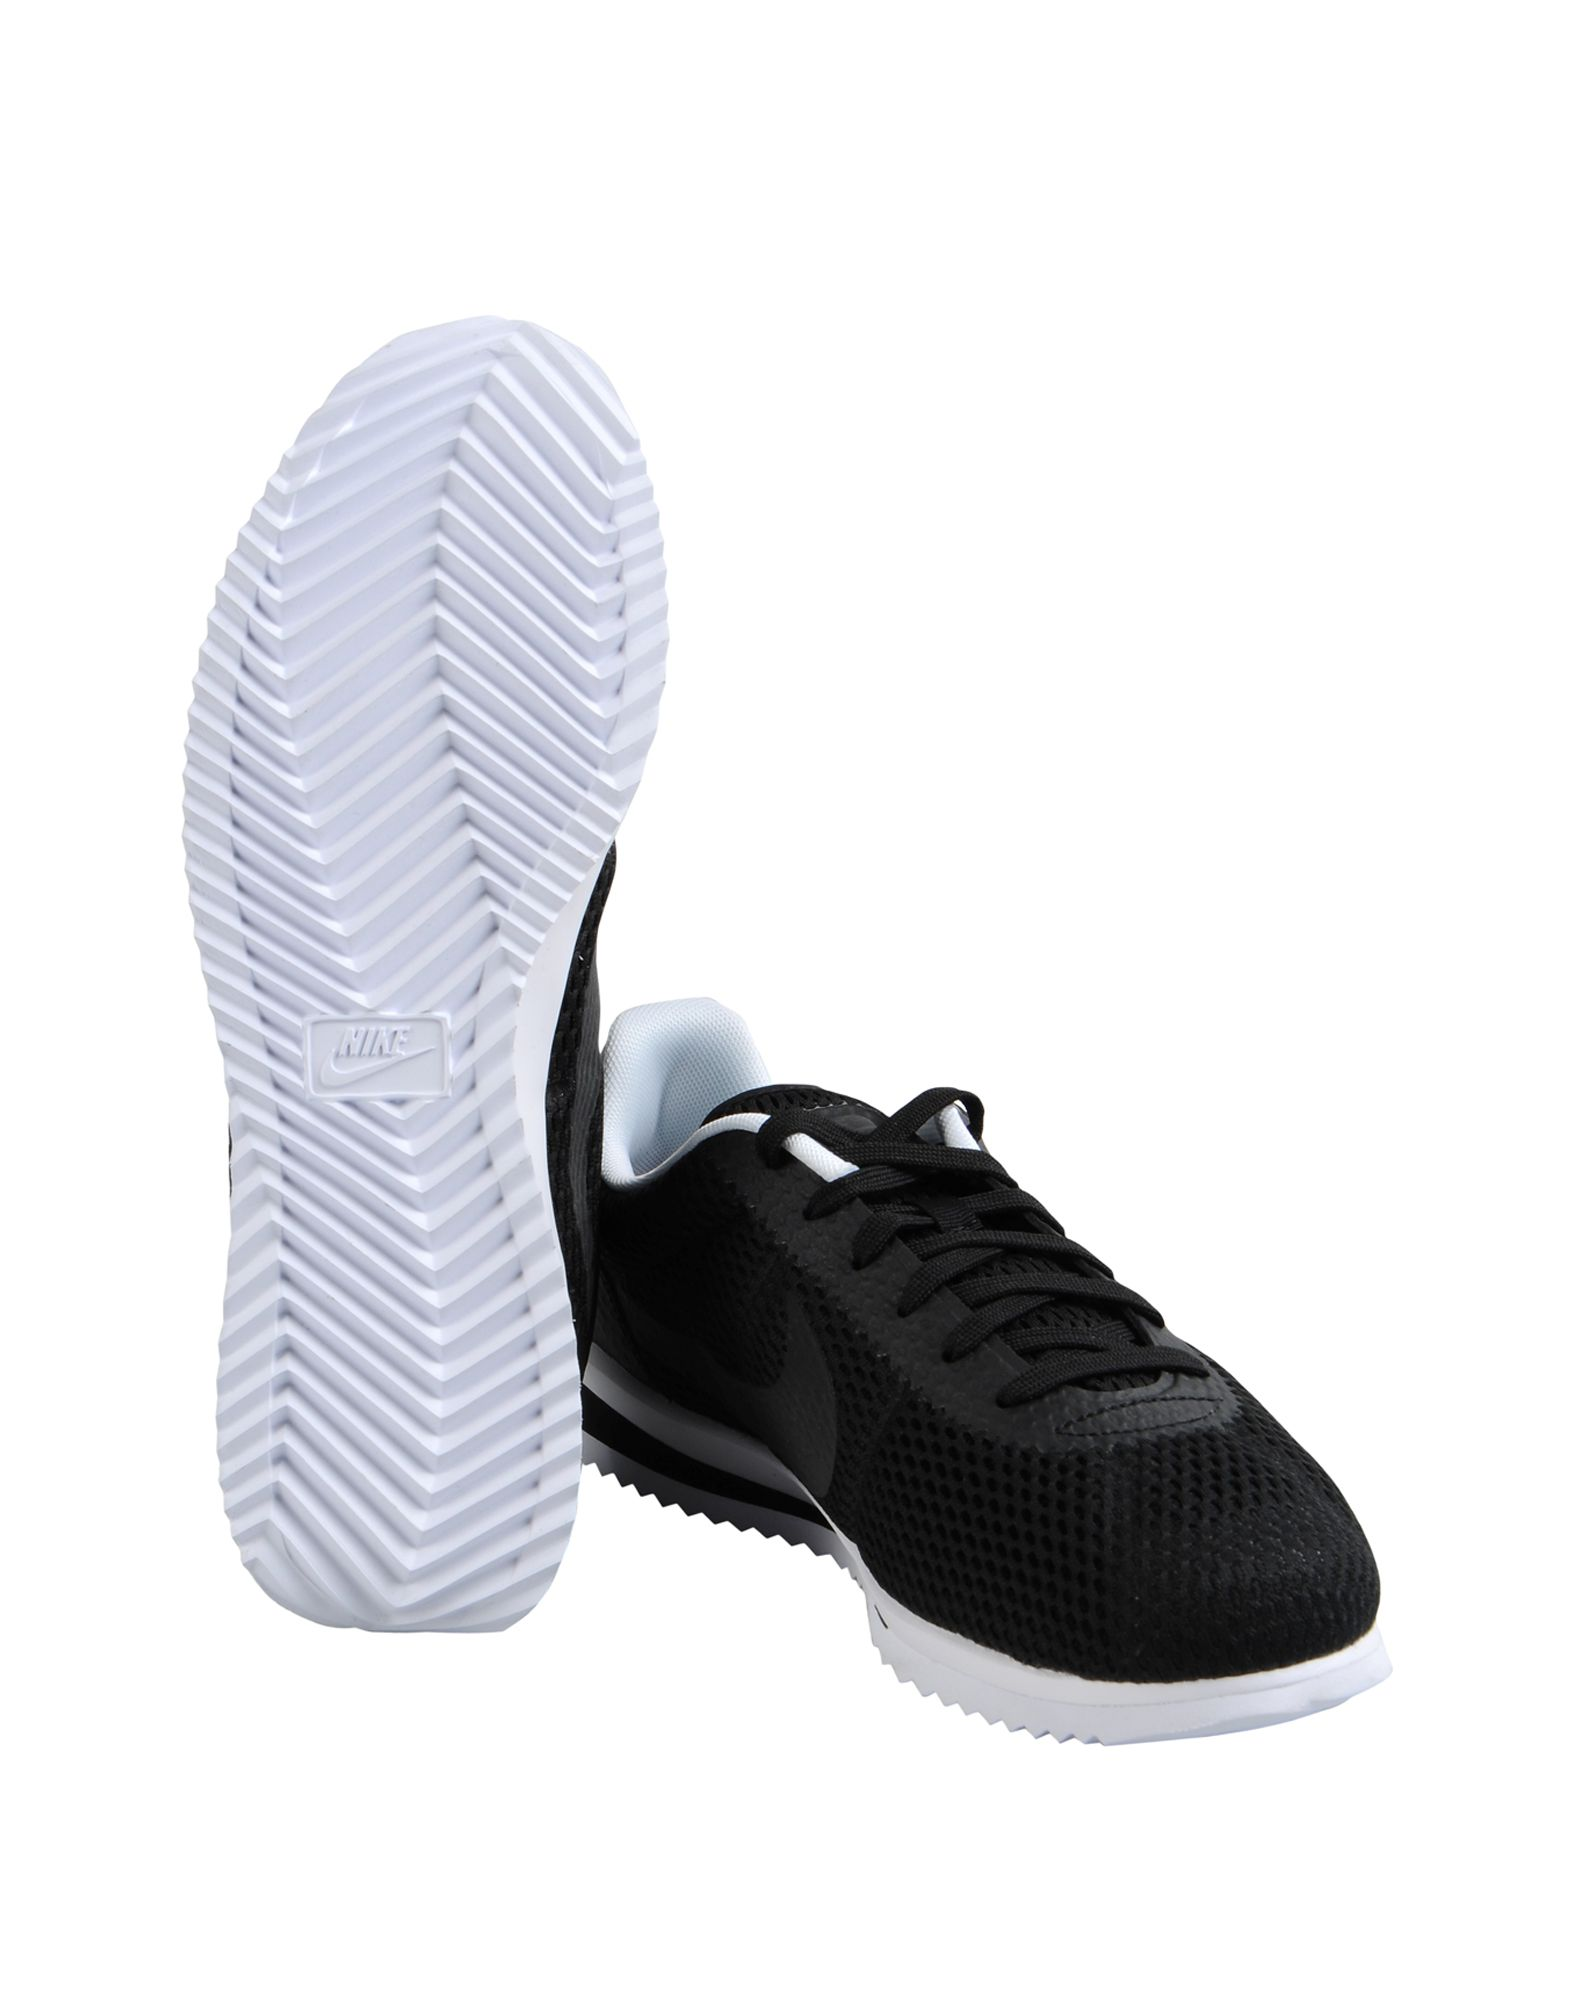 Sneakers Br Nike Nike Cortez Ultra Br Sneakers - Uomo - 11060655GH c7cabf